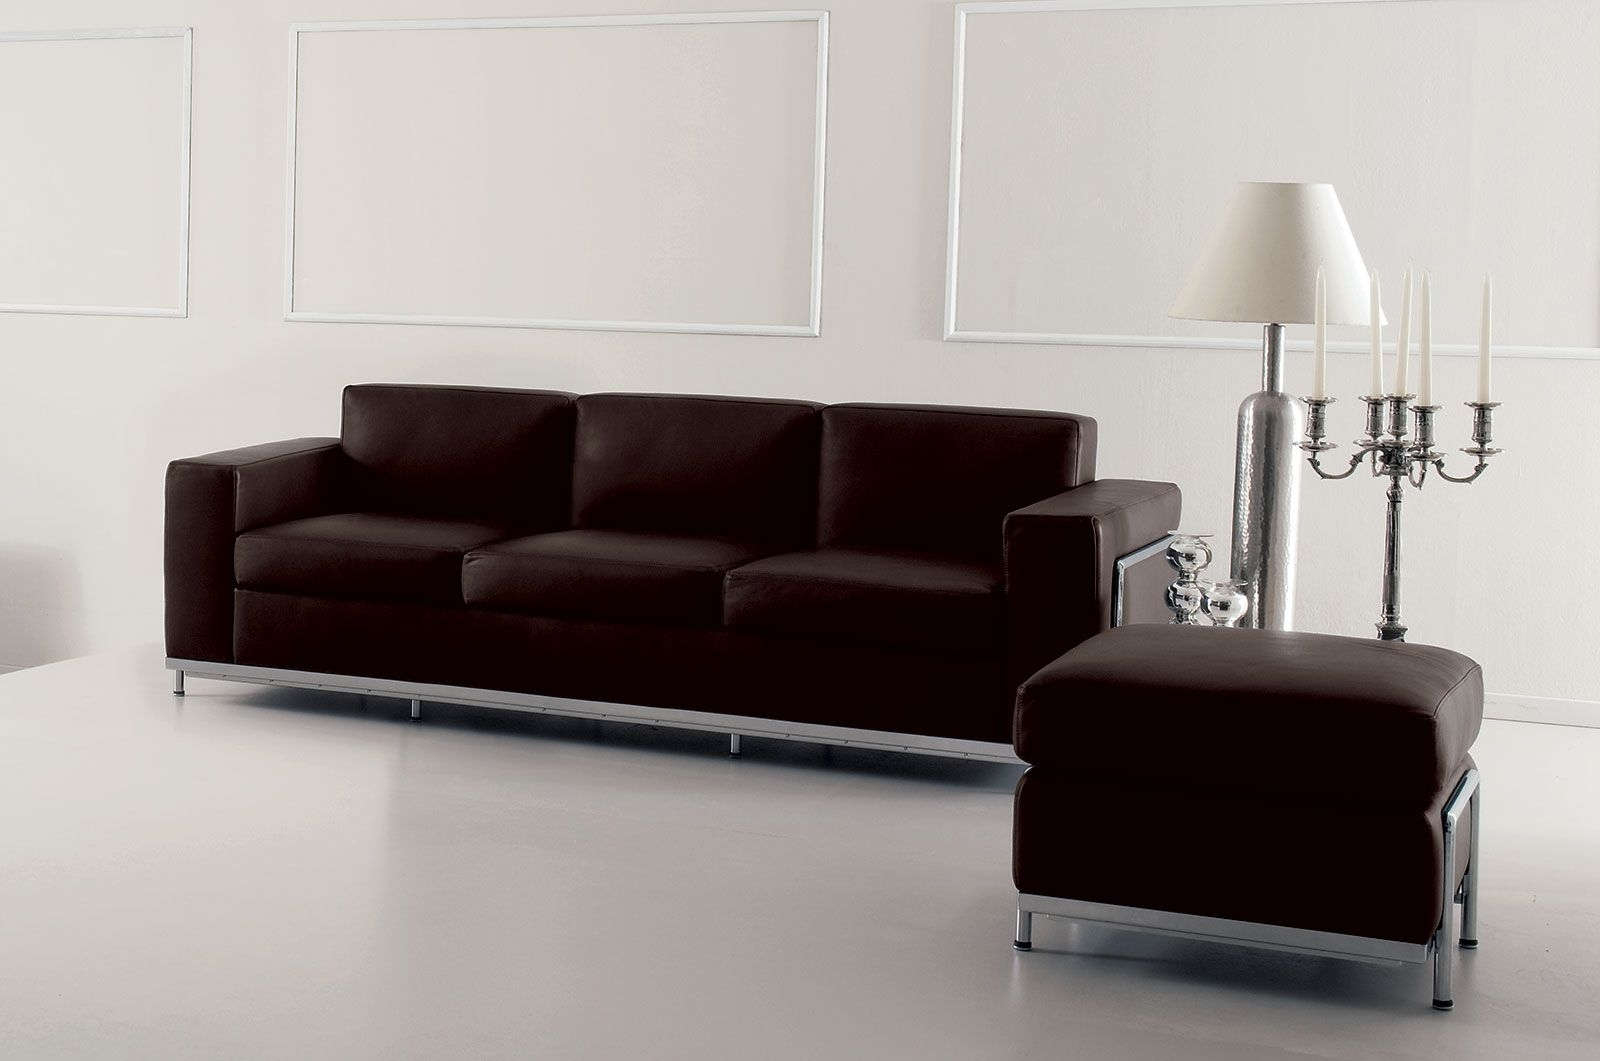 Hawaii, Leather Sofas And With Regard To Current Hawaii Sectional Sofas (View 10 of 15)